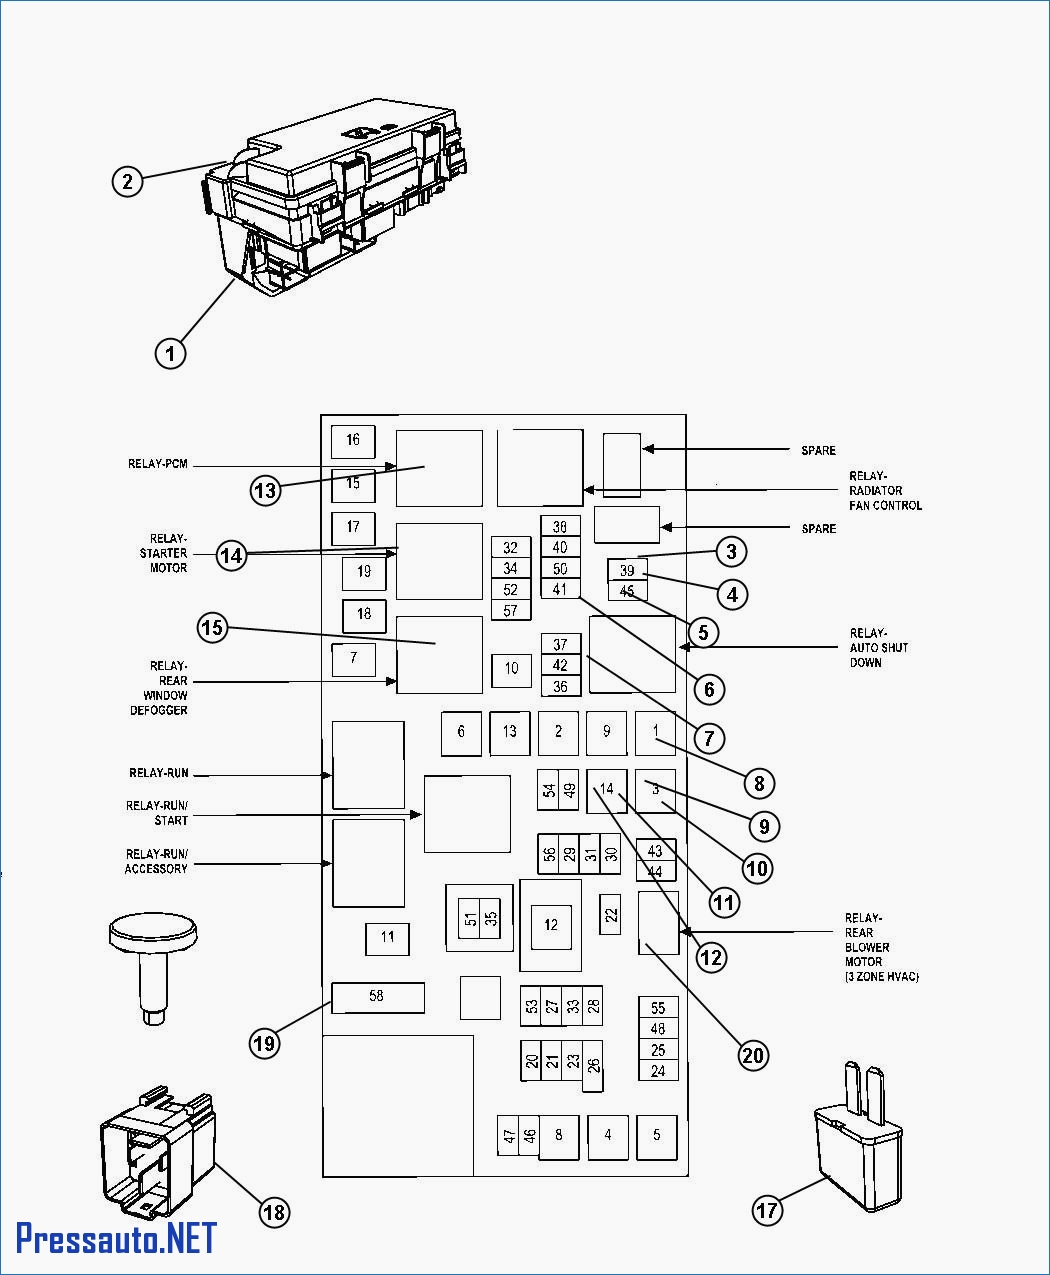 1973 dodge charger ignition wiring diagram 99 cherokee radio 1969 harness